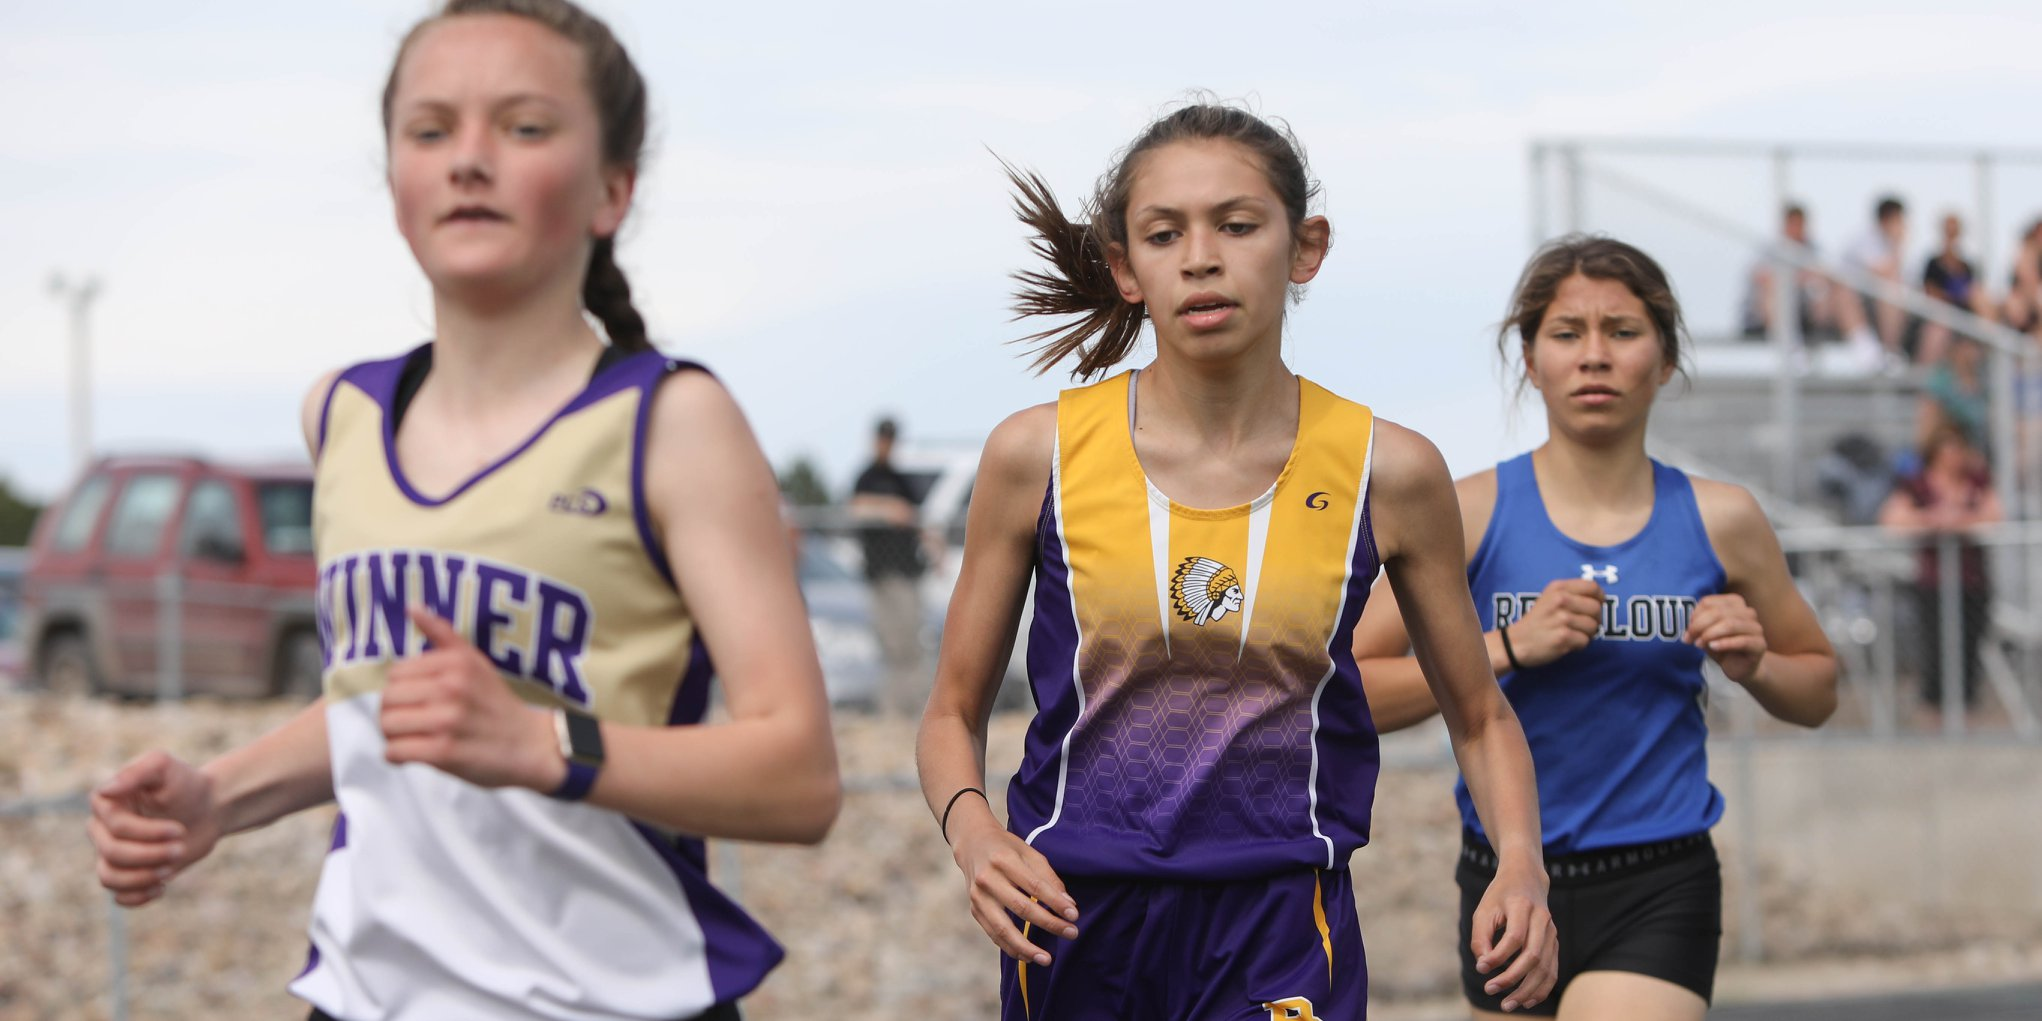 - At center is Bennett County 8th-grader, Taylor Bylerly who won the 1600 meters over Winner's Sidda Schuyler and Red Cloud's Jade Ecoffey with a lifetime best of 5:28